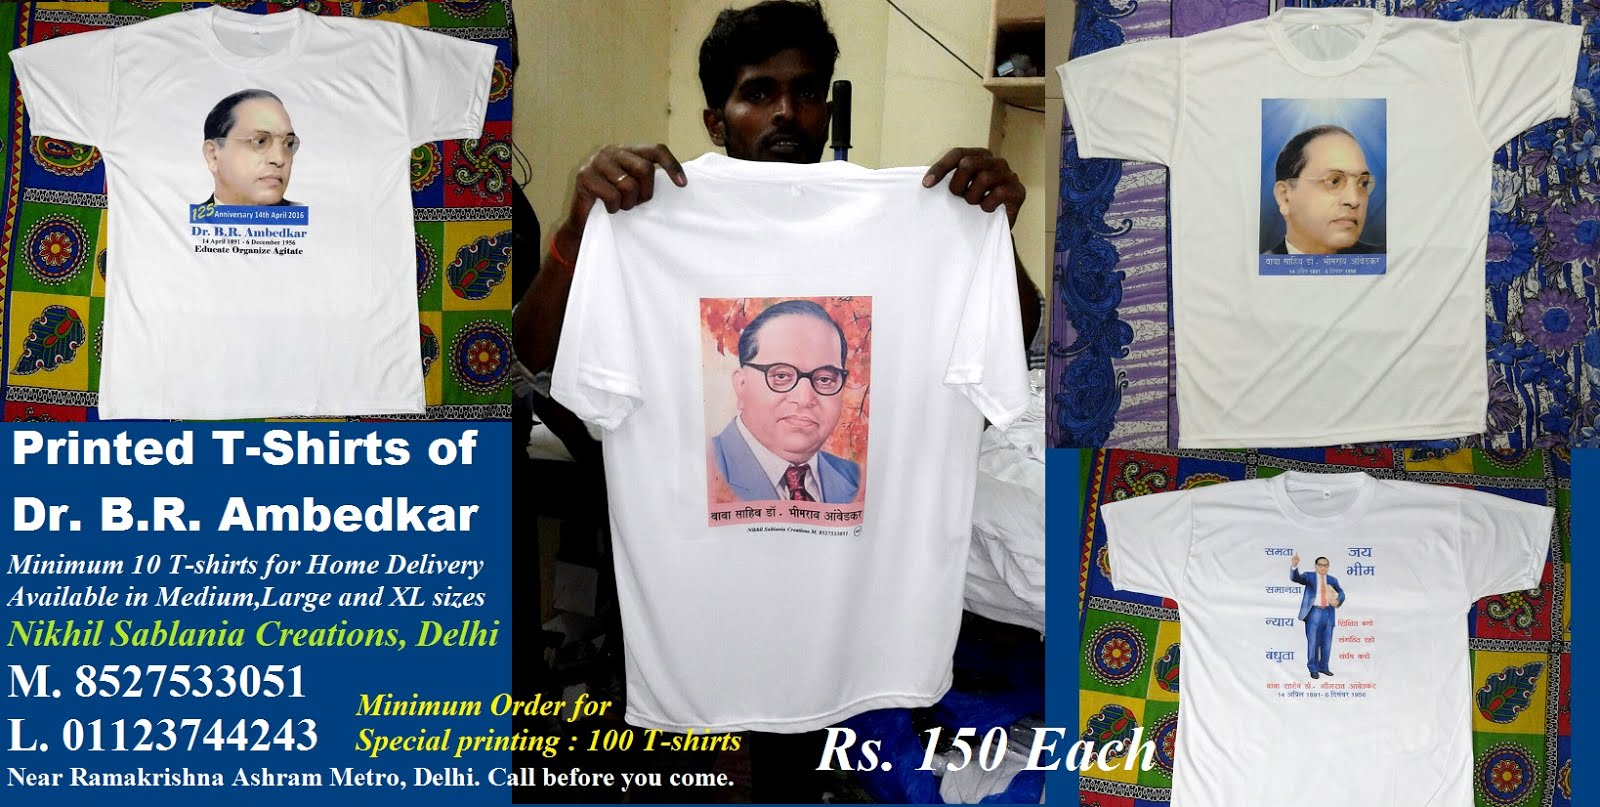 T-shirts of Dr. Ambedkar